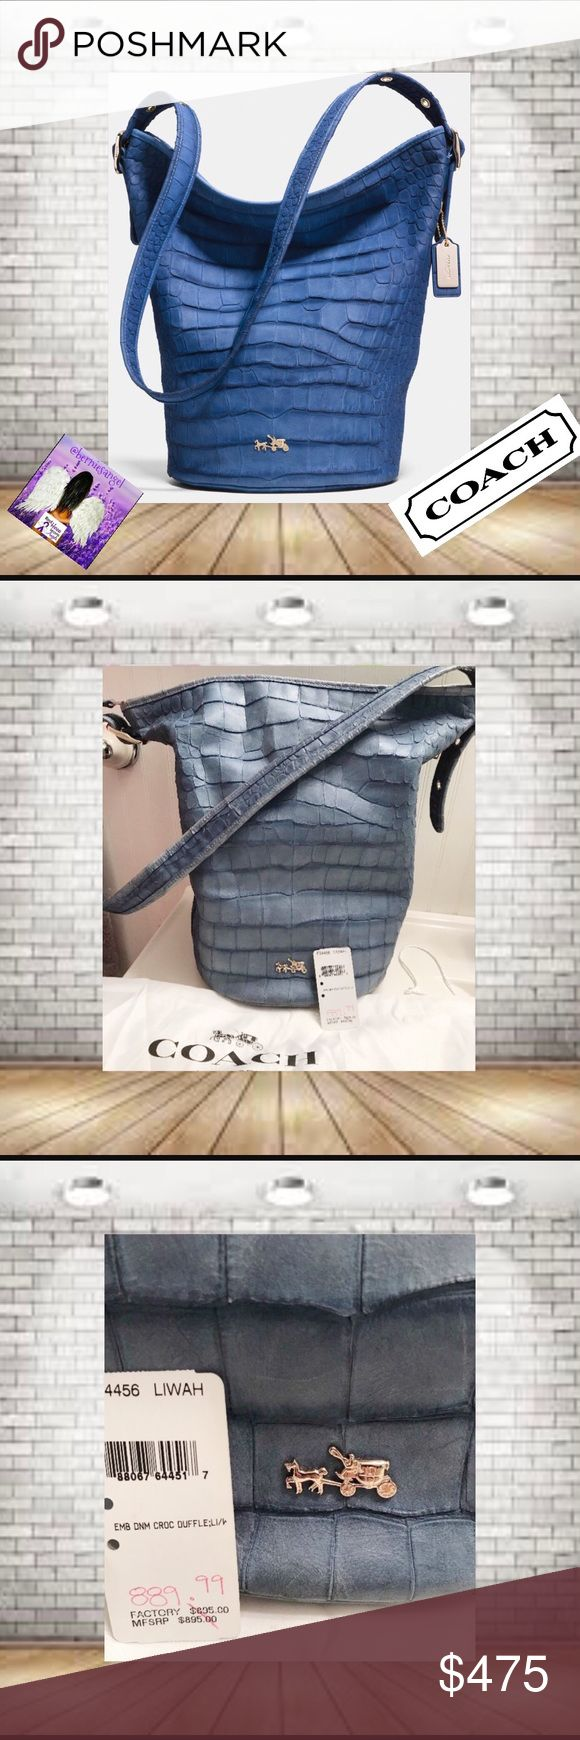 "Coach Croc Embossed Denim Duffle Shoulder Bag NWT Rare Bag December 2014 Pre-Spring Launch Of 2015 Collection. has minor Scratches from Being Displayed.  Flat leather 1.25"" wide handle, adjustable with buckles from 14"" to 22"" drop 2 multi-function slip pockets. zip pocket  Slouch Bag. Hang Tags was not released with the 2014 bags!! Bag has Silver Hang Tag Only. Color photos with light differently.  14.5"" L (top) x 10"" L (bottom) x 13.5"" H  x 9"" D. This bag will ""Weather & Distress"" it is…"